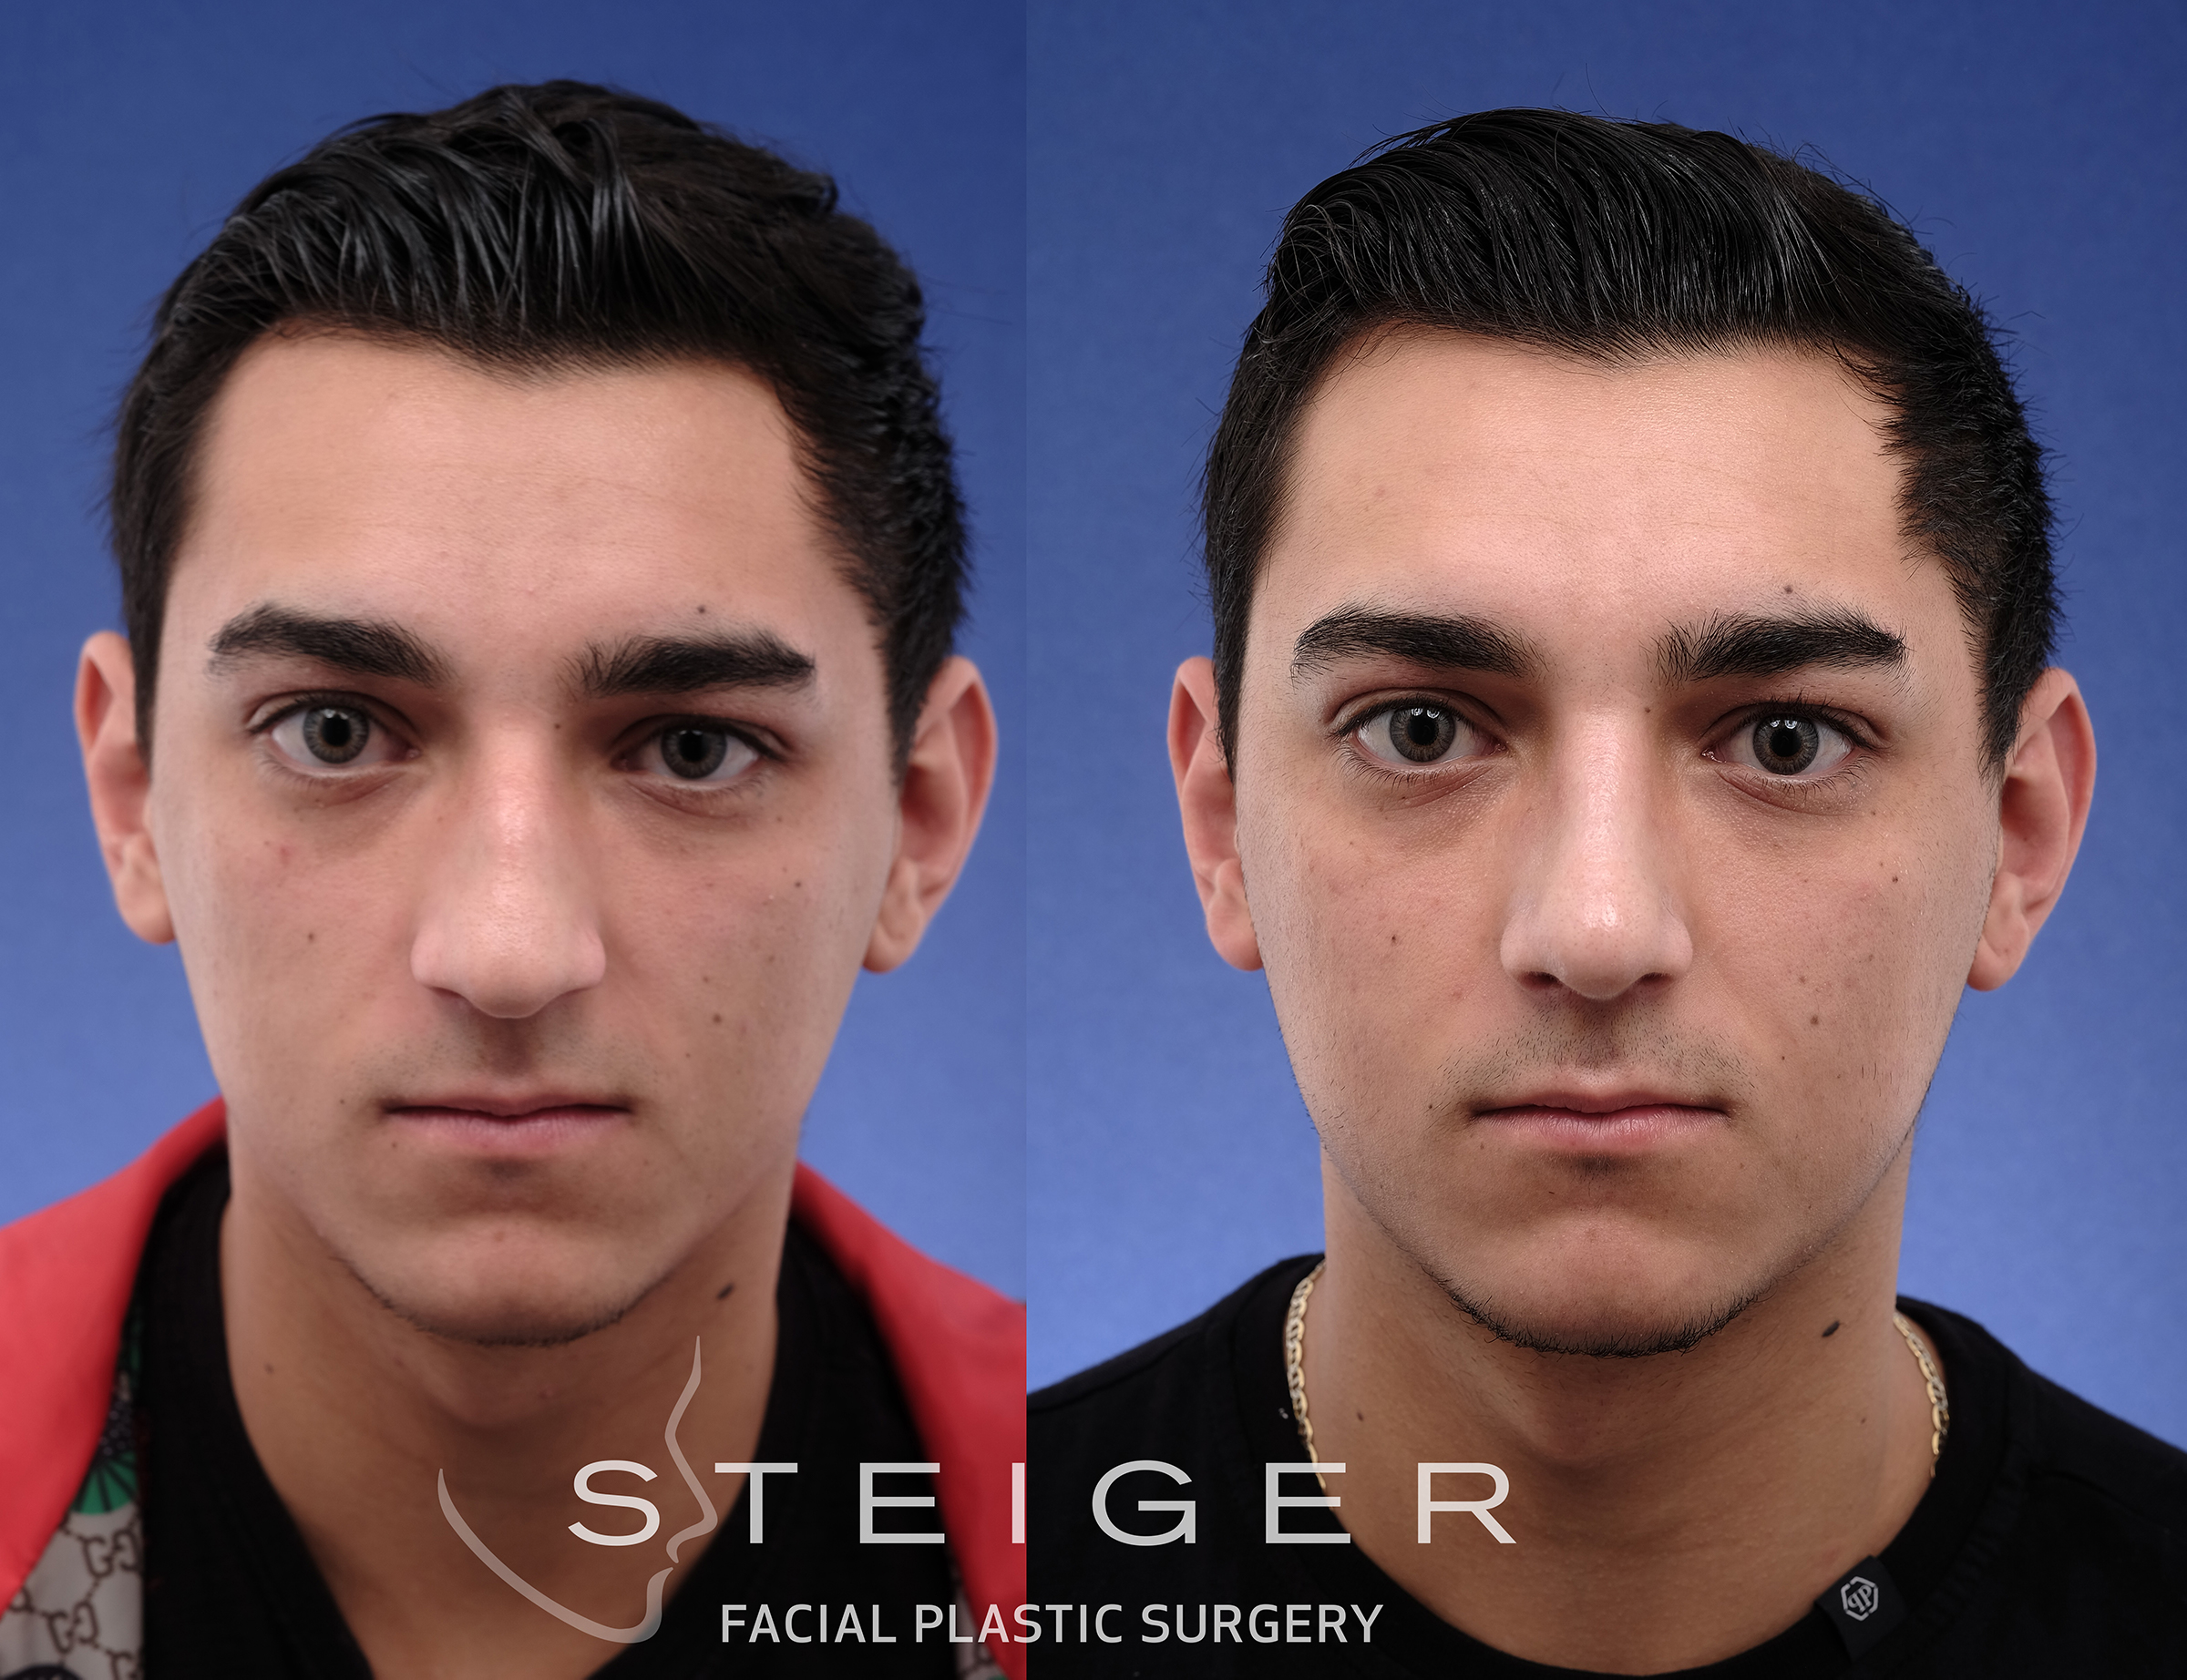 rhinoplasty in a teenager